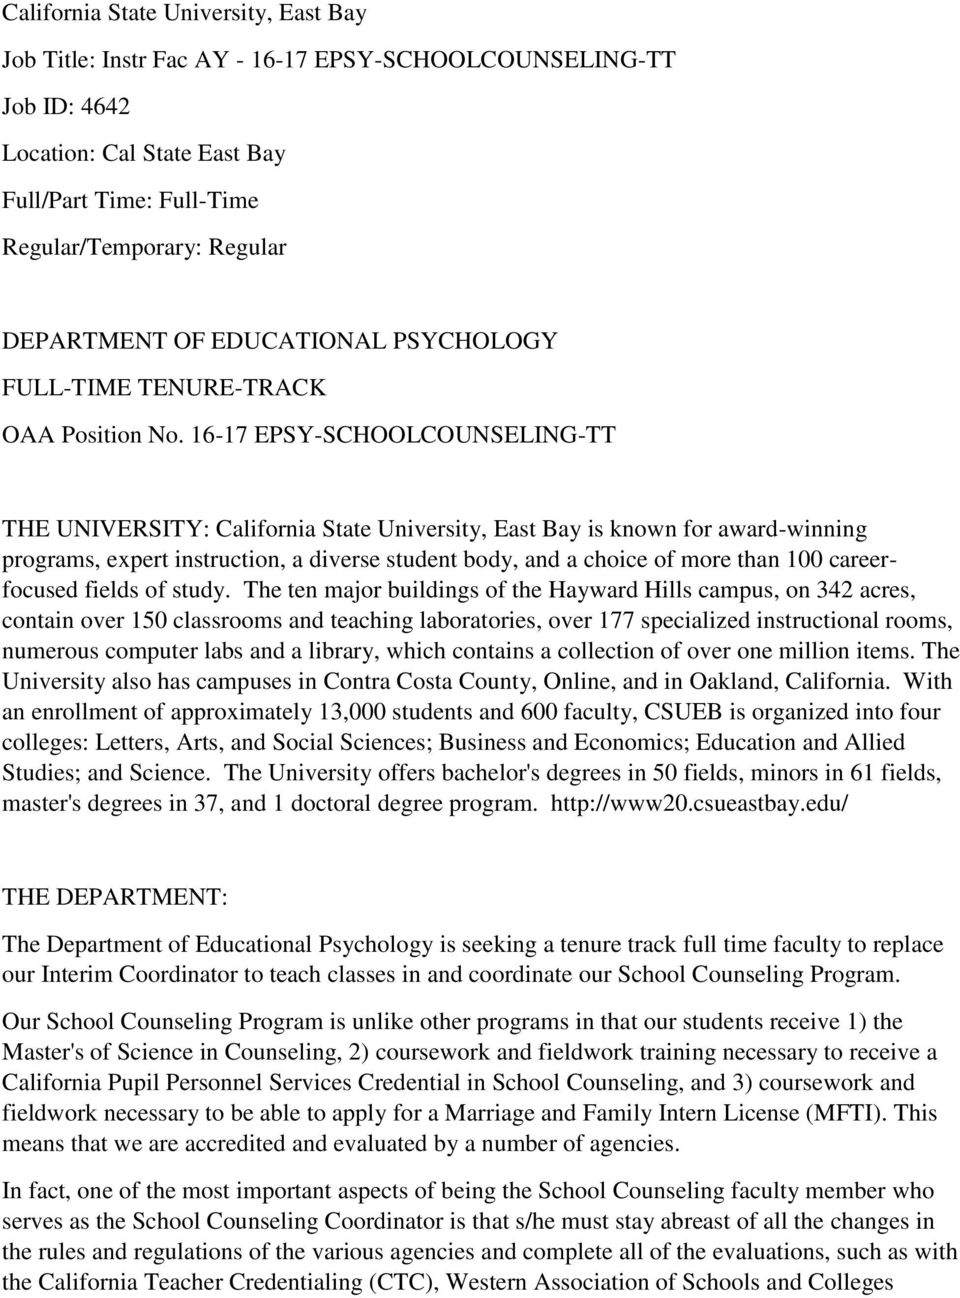 Department Of Educational Psychology Full Time Tenure Track Oaa